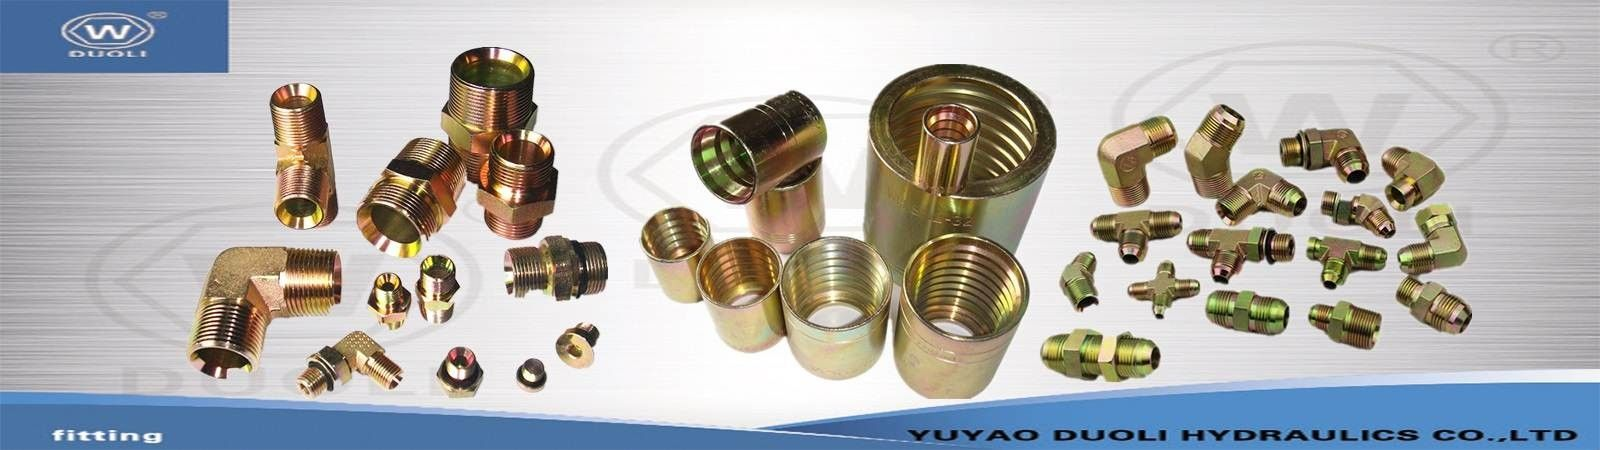 Hydraulic Hose Ferrule Fittings